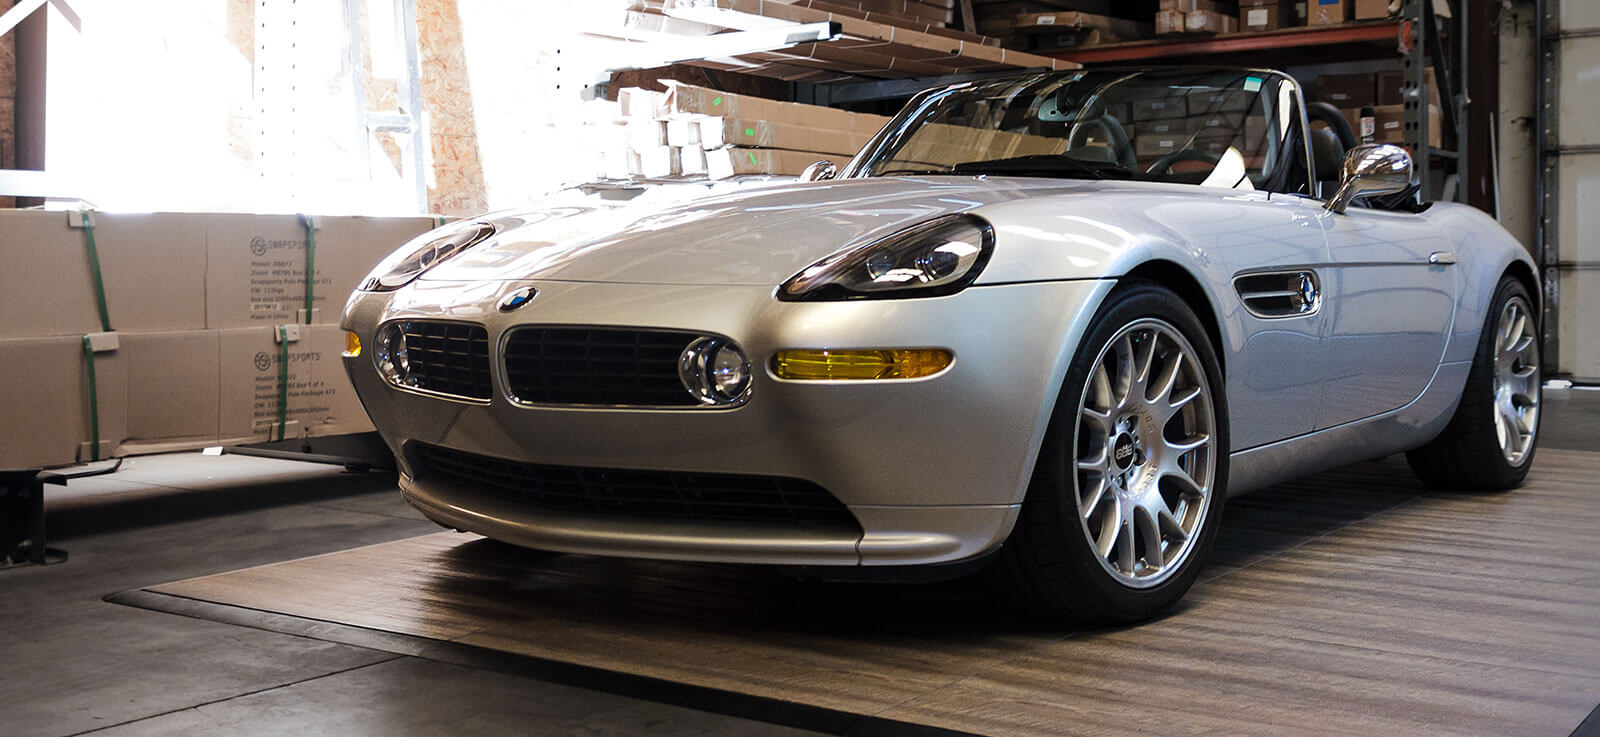 A BMW Z3 parked on Smoked Oak display flooring and on display in a warehouse.